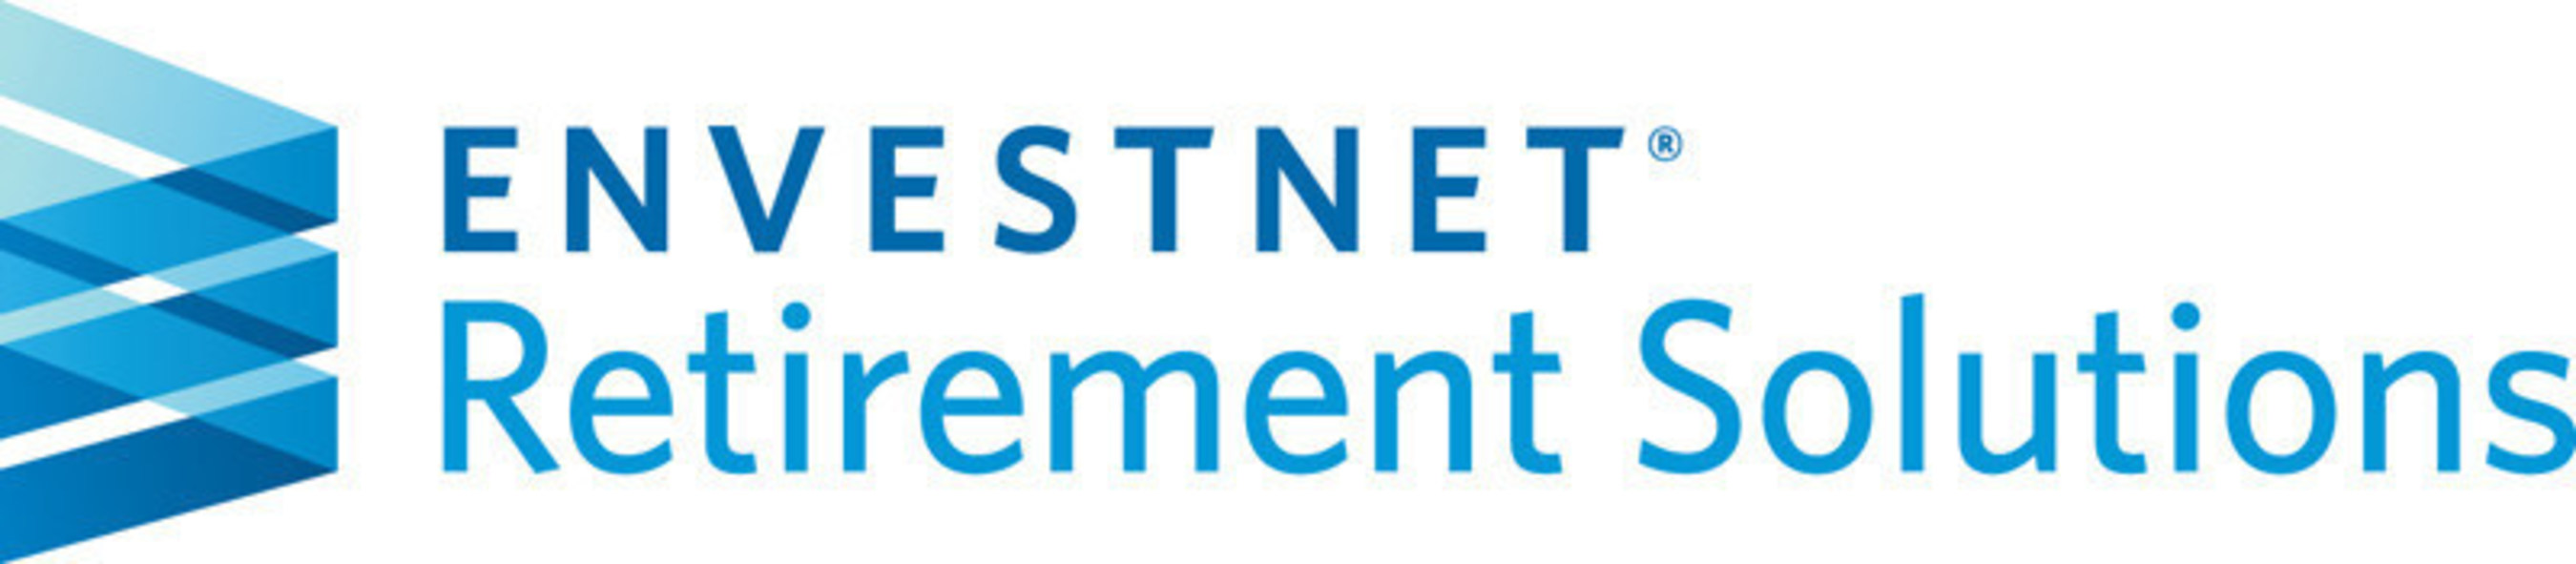 Envestnet | Retirement Solutions (ERS), a subsidiary of Envestnet, Inc., provides retirement advisors with an ...